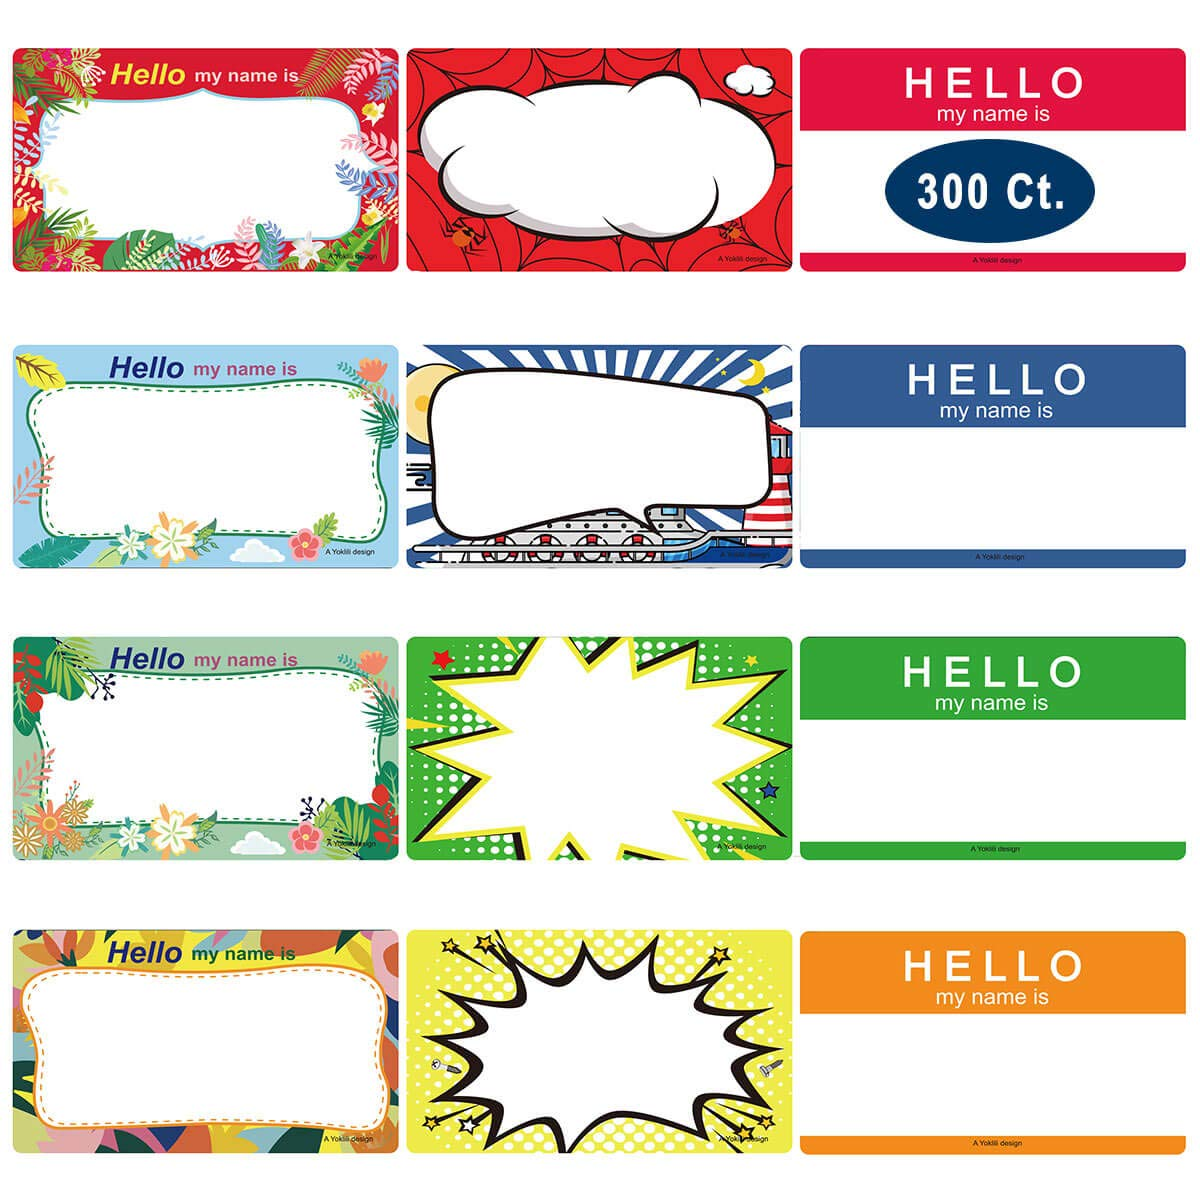 image relating to Printable Name Labels known as Status Tag Labels Stickers, Yoklili Printable Hi there My Standing is Colourful Simple Track record Badge Tags, Print or Produce, 3 1/2\